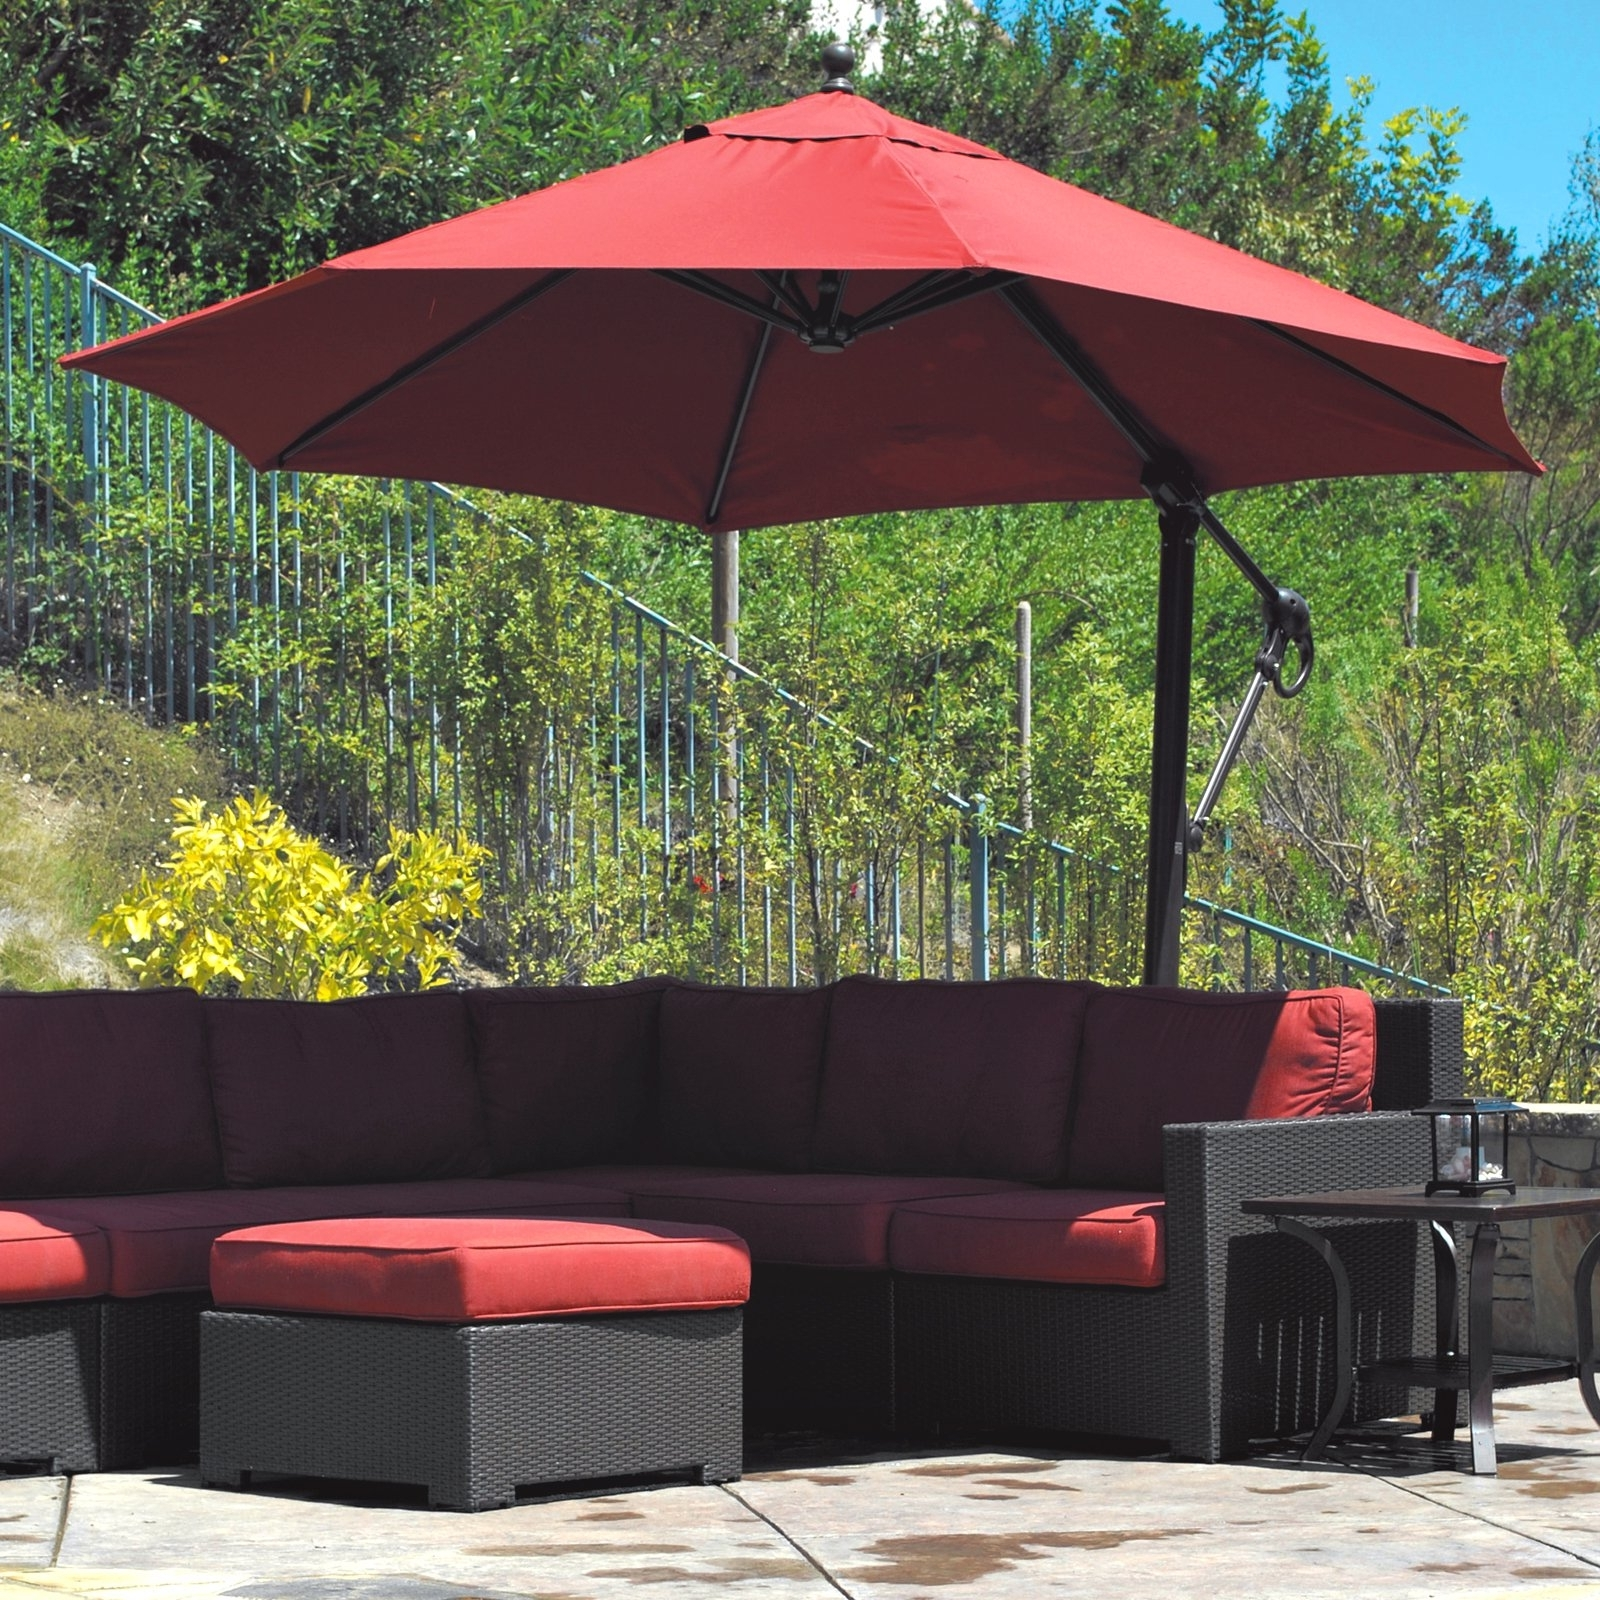 Best Offset Patio Umbrellas — Wilson Home Ideas : Outdoor Offset For Most Recently Released Hanging Offset Patio Umbrellas (View 11 of 20)